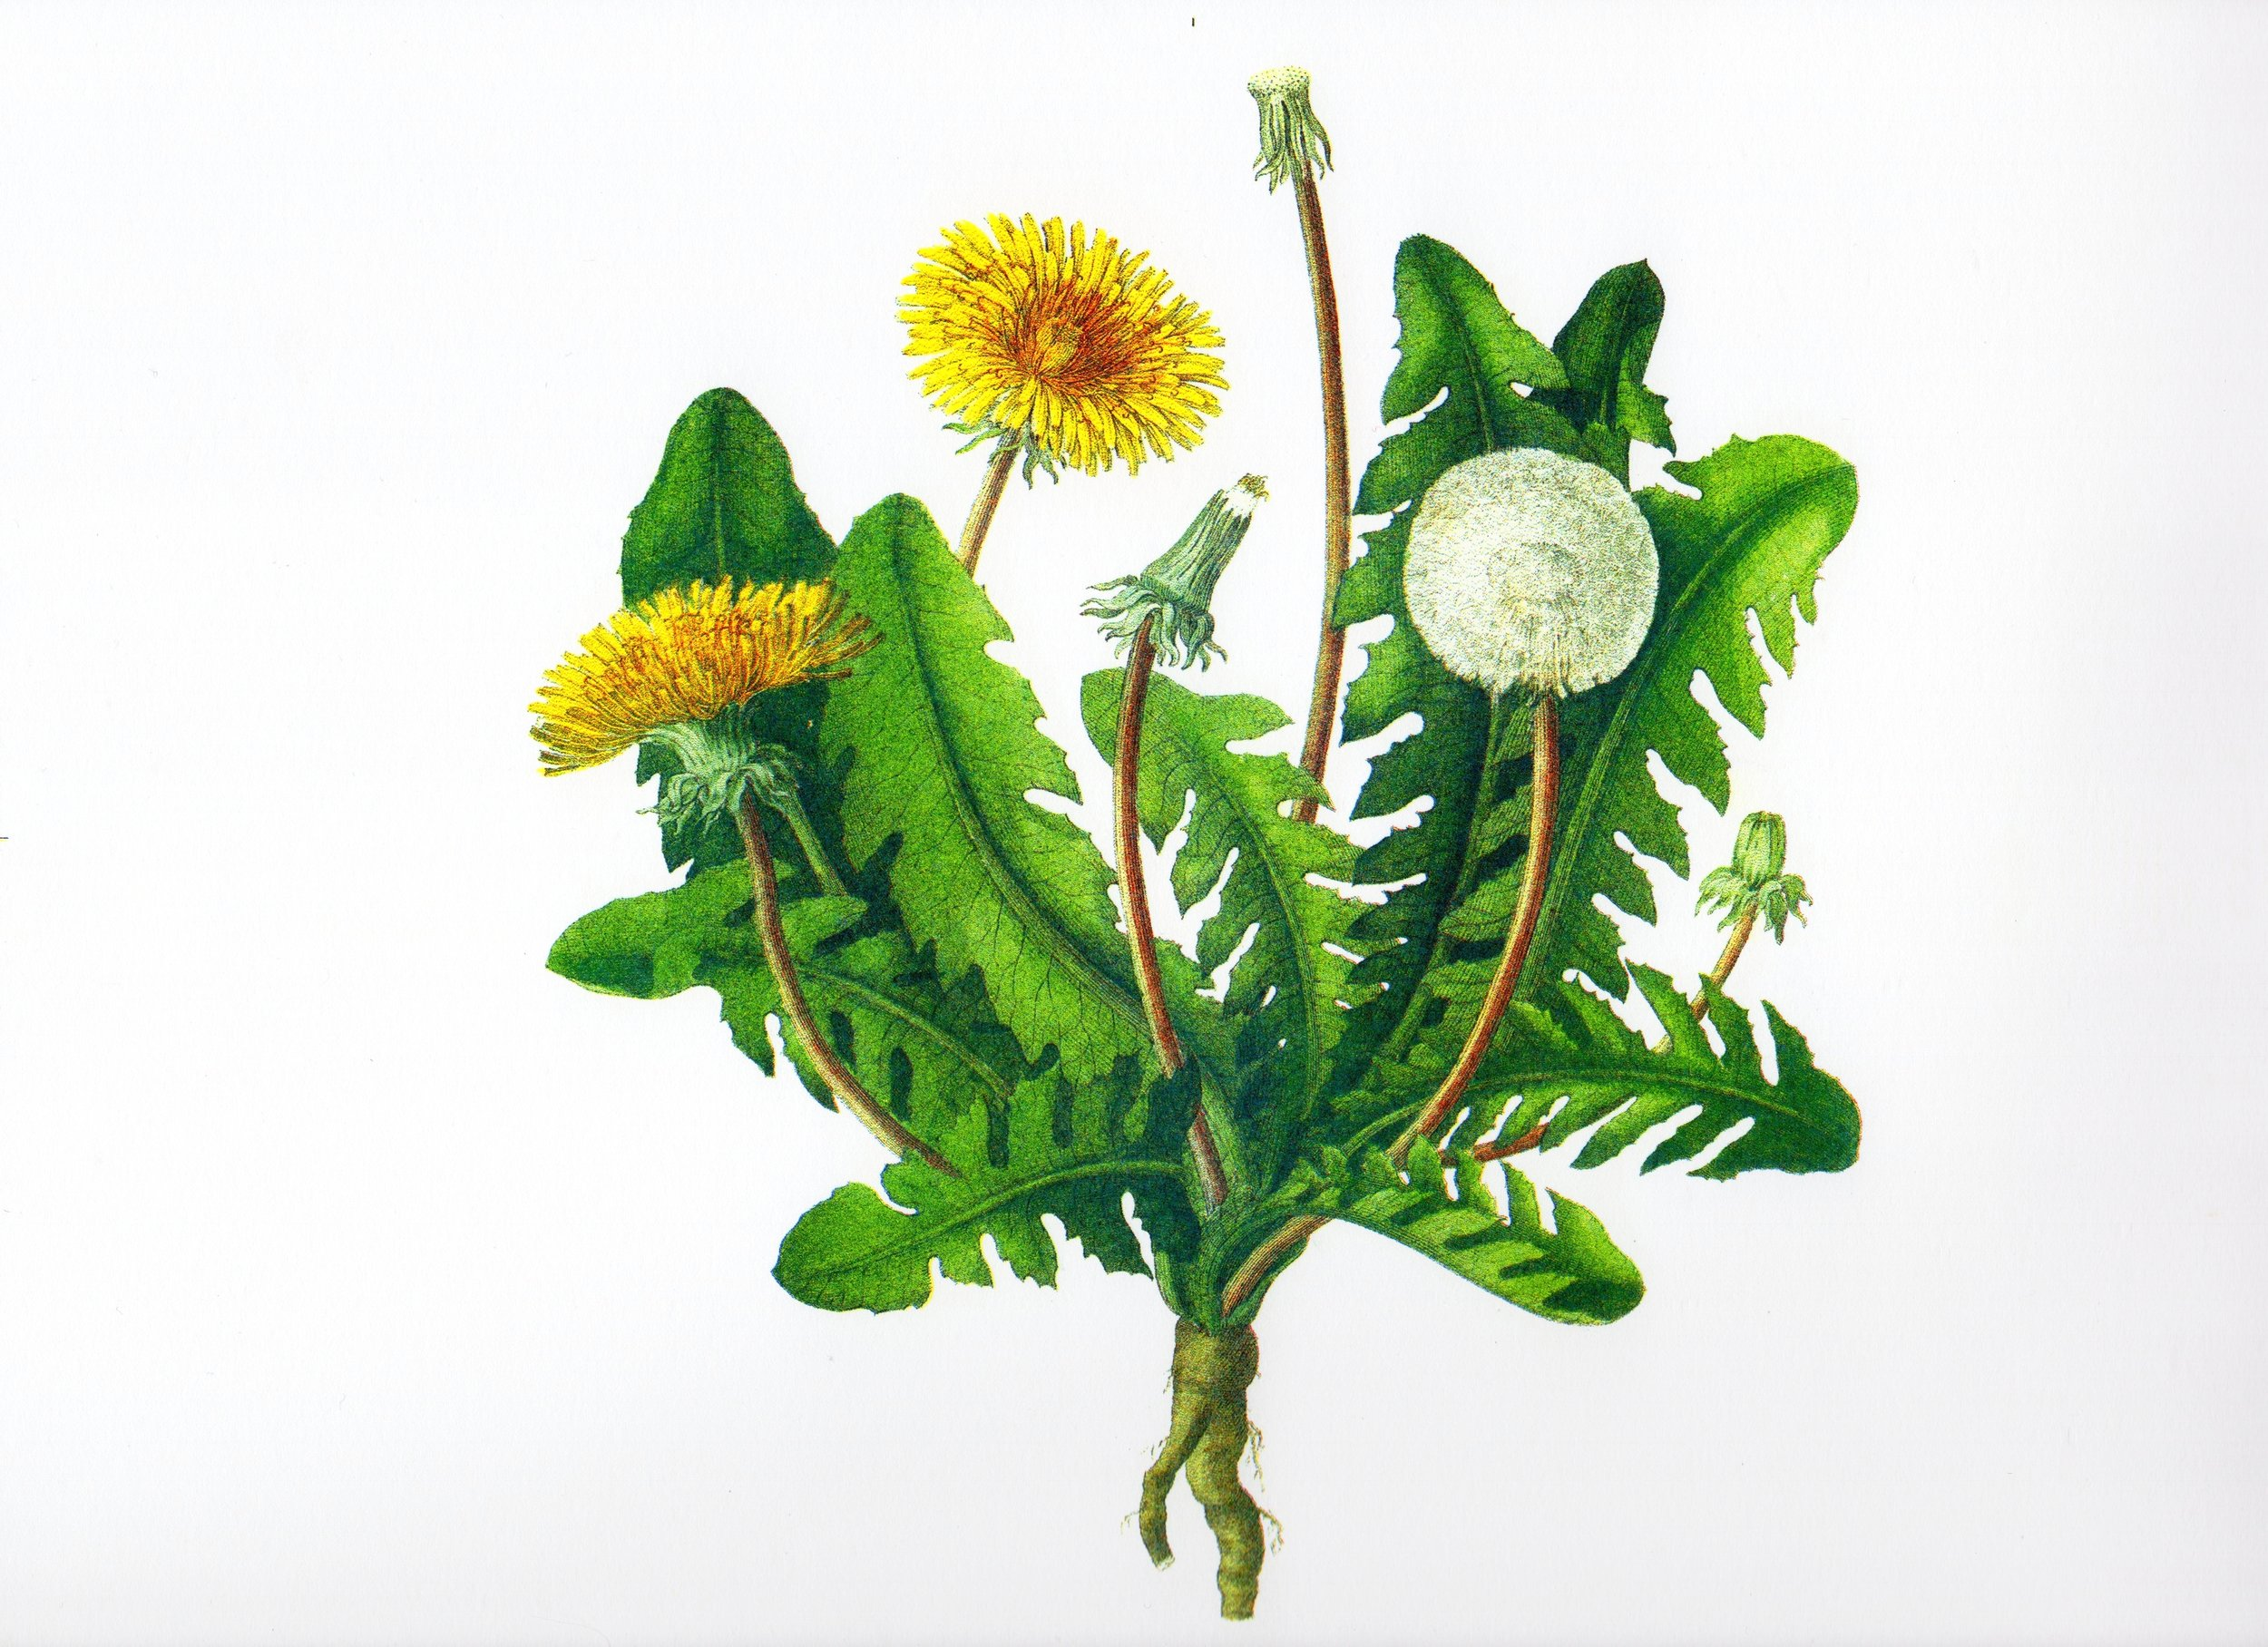 Dandelions, after a 19th century engraving - 3 colour book cover using Blue, Red, and Aqua Blue inks